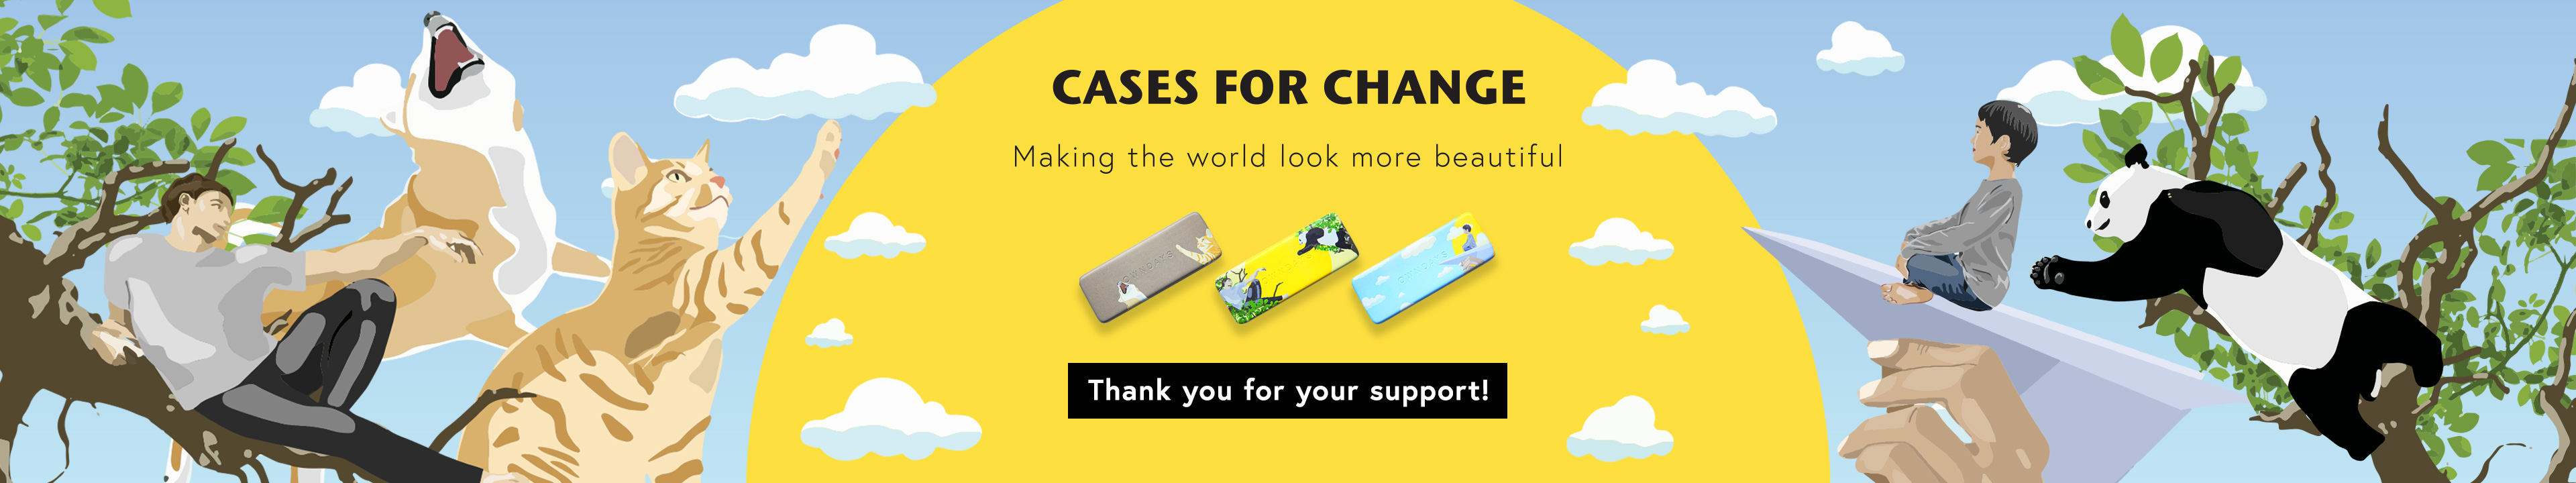 CASES FOR CHANGE